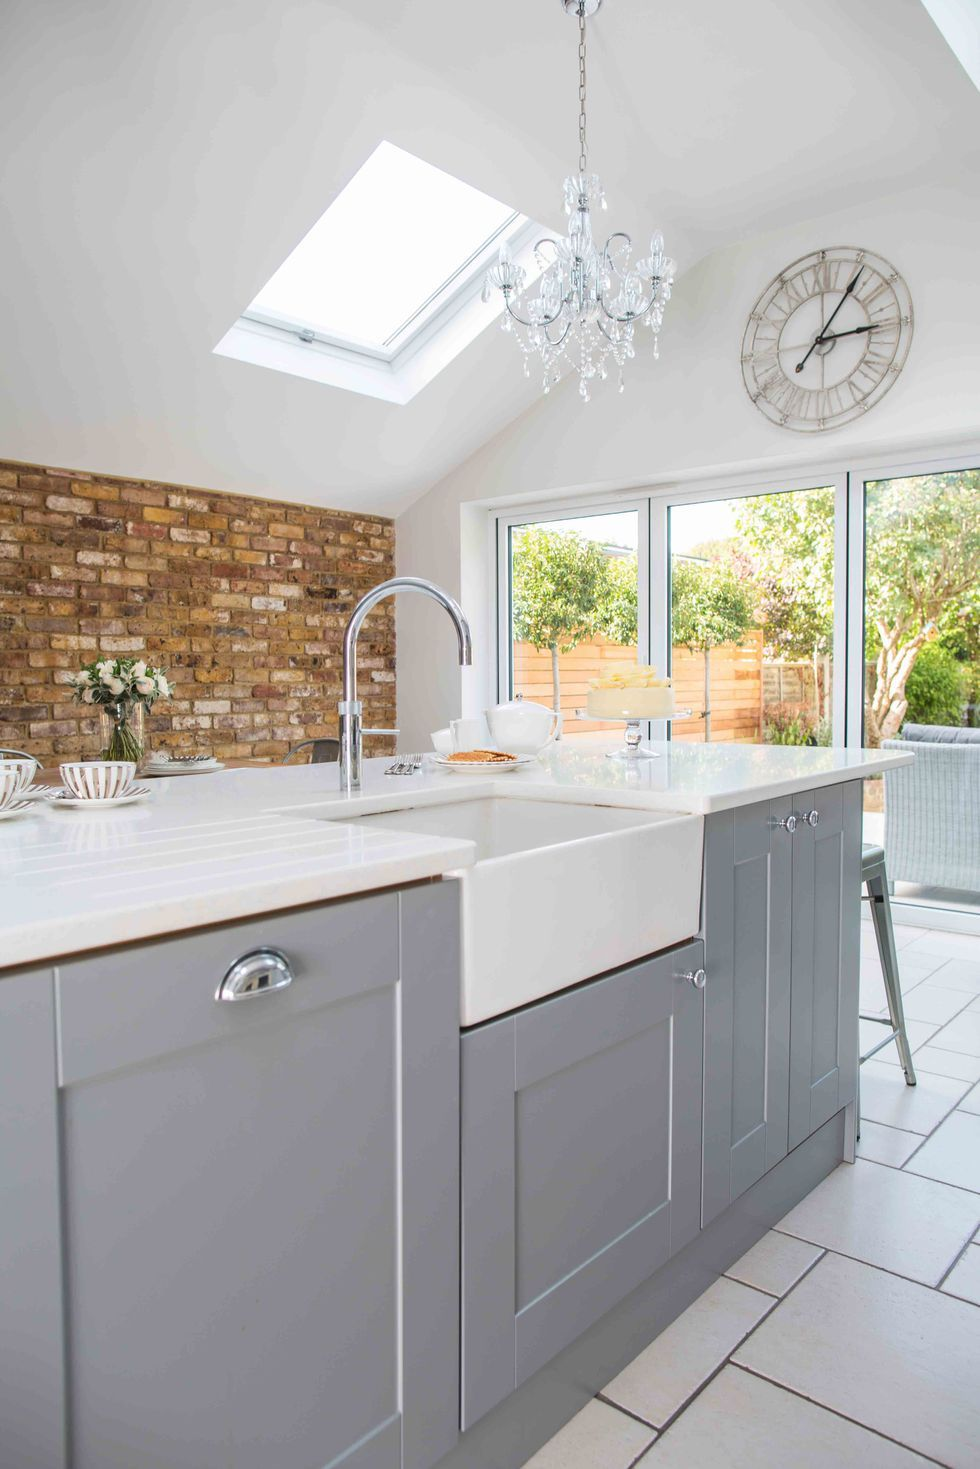 Small galley kitchen transformed into spacious room for the entire family to socialise #greykitcheninterior